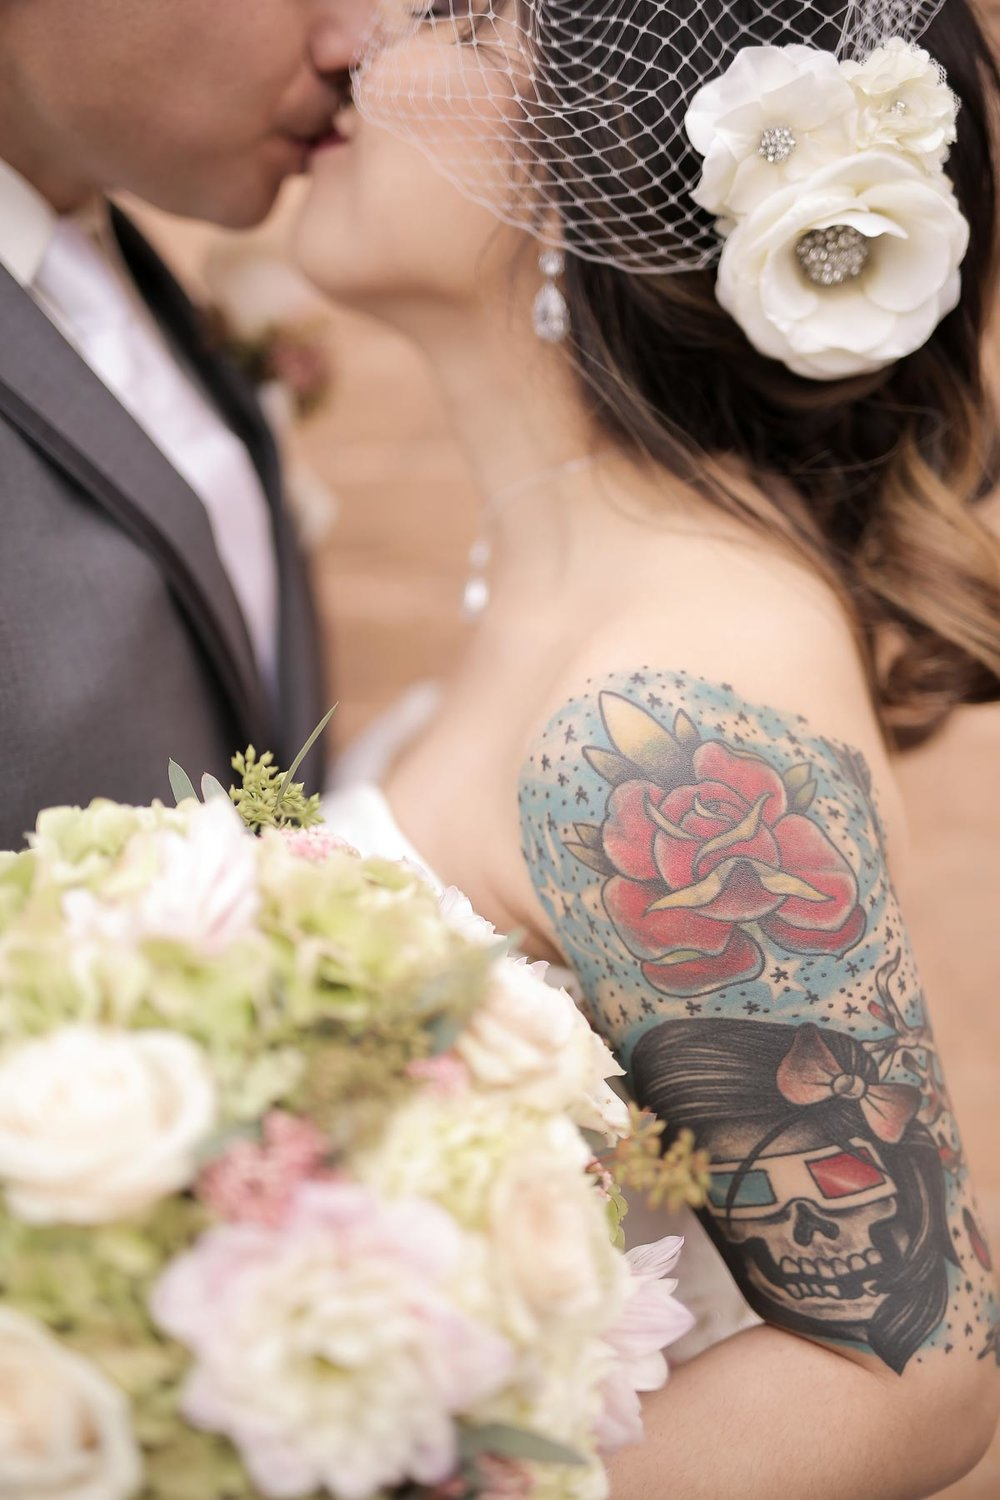 tatooed-brides-portrait-ideas-utah-weddings_pepper_nix_photography-18.jpg